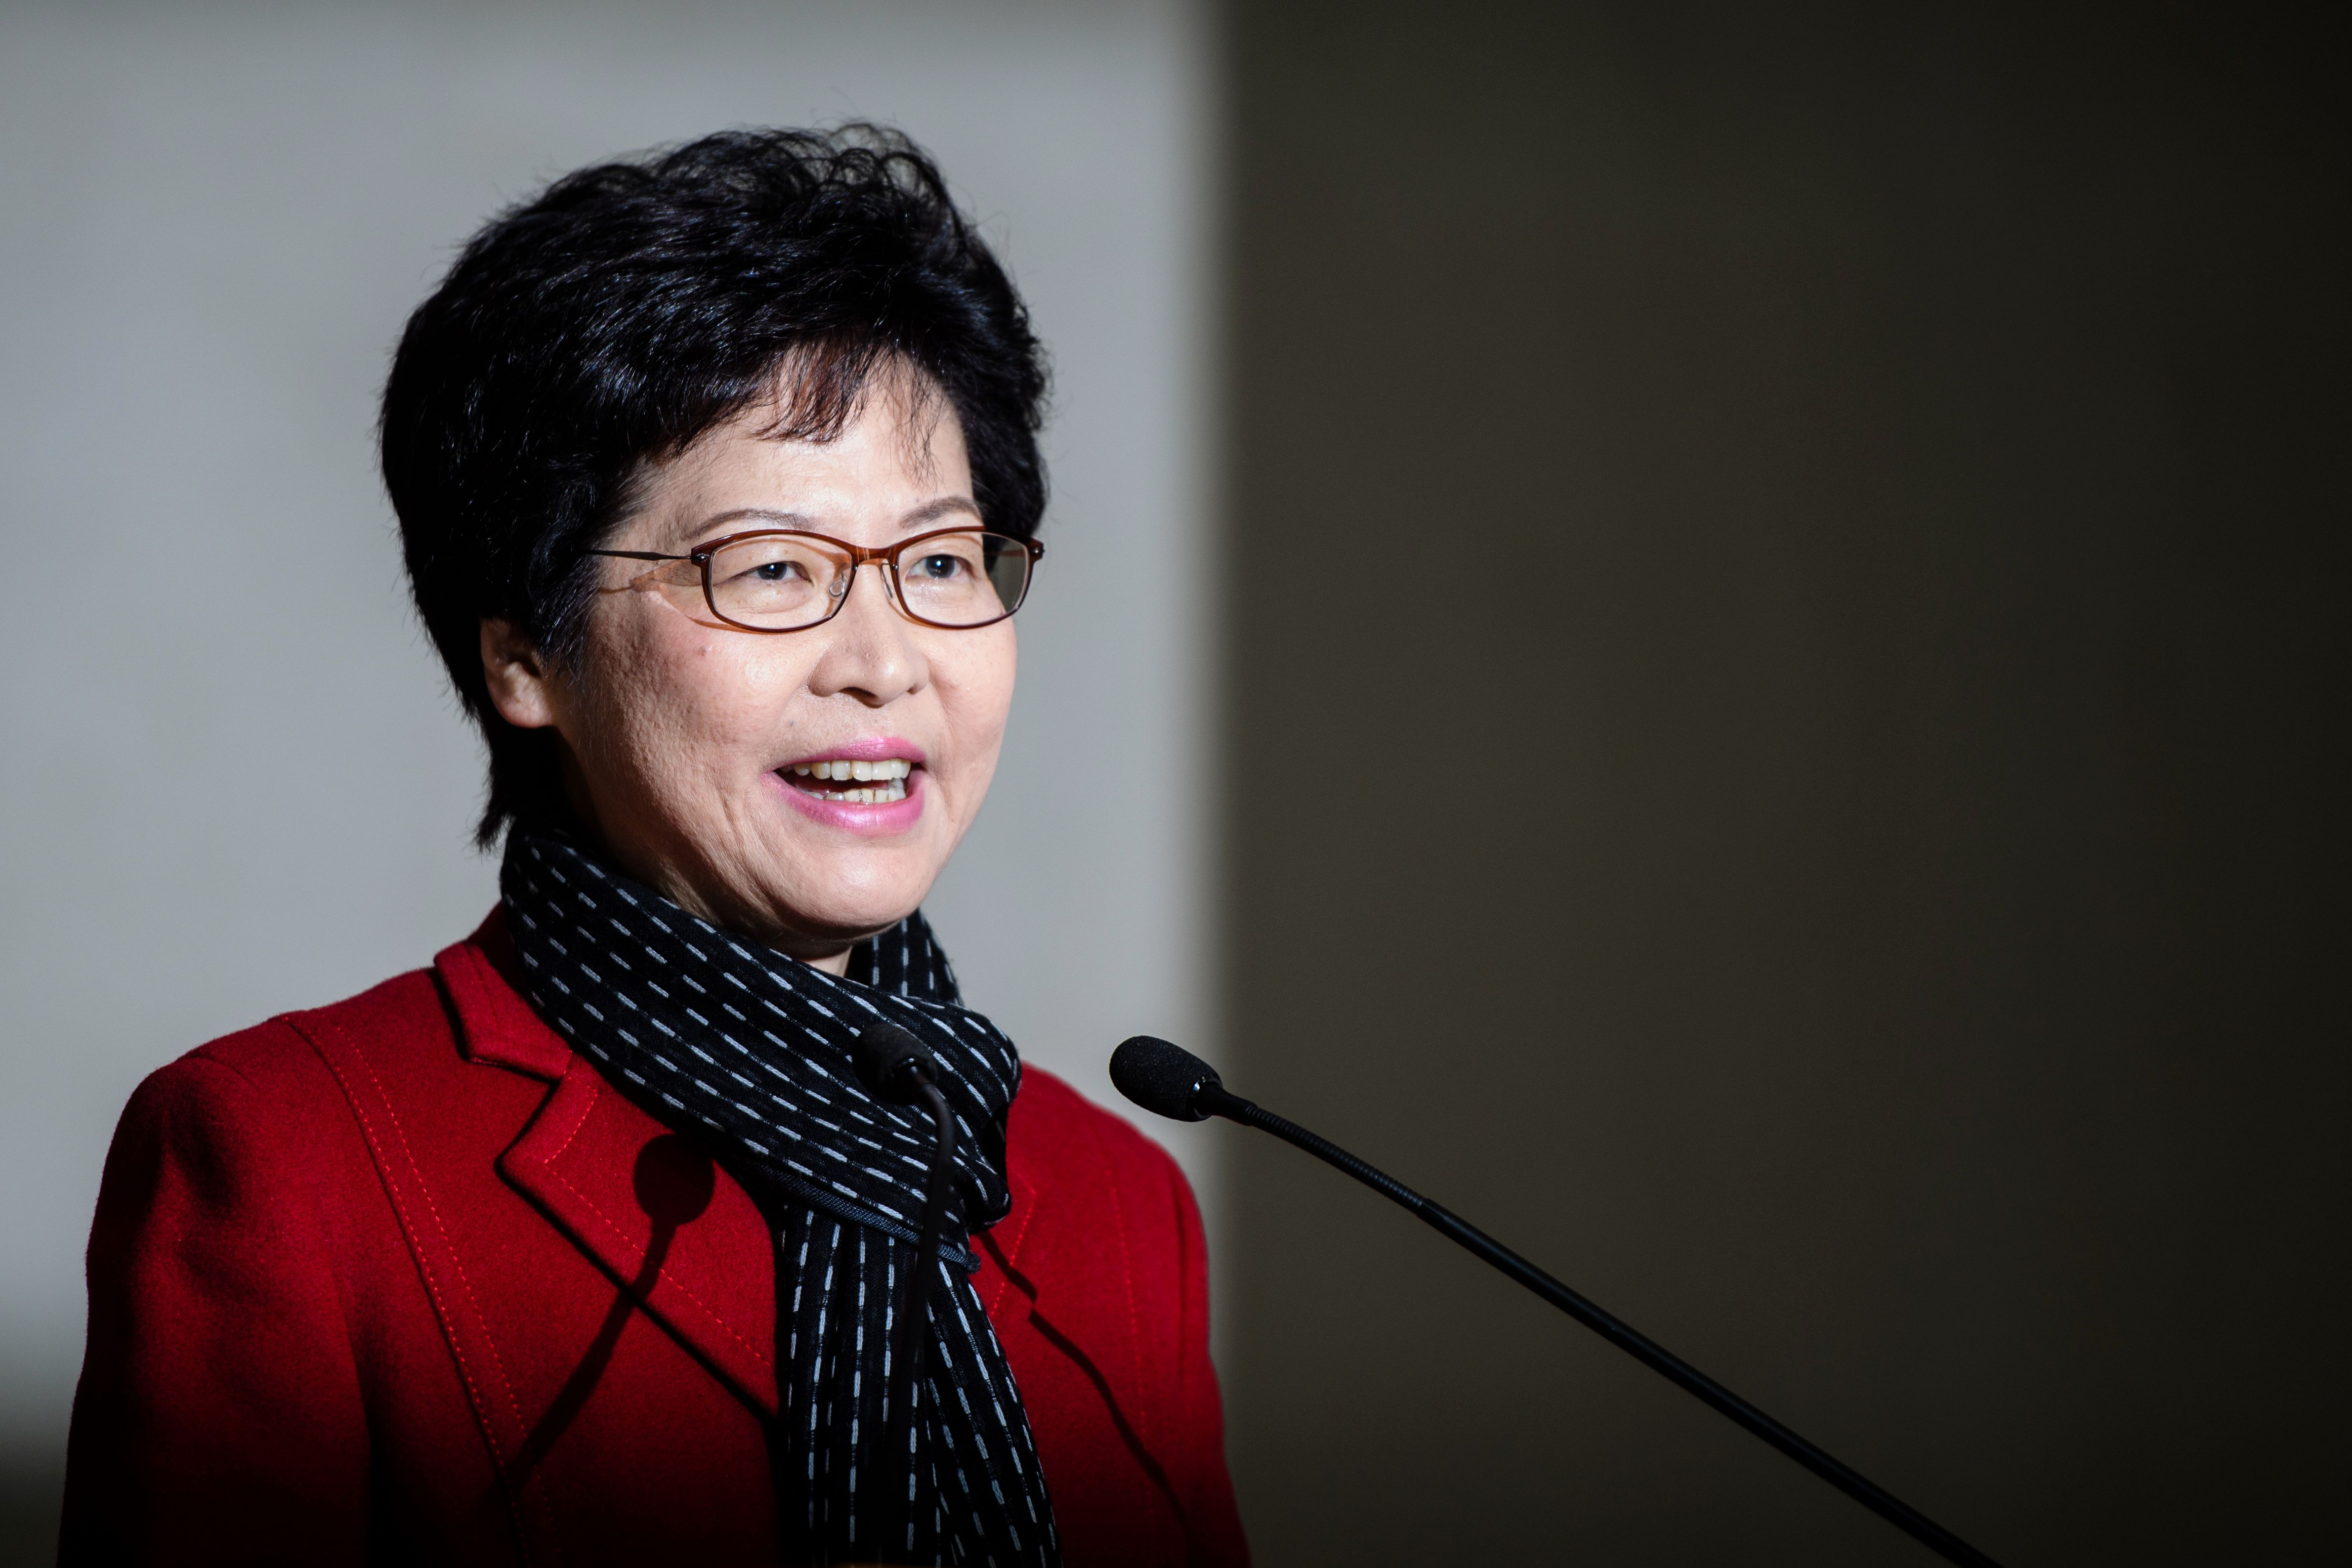 Hong Kong's chief executive-elect Carrie Lam in Hong Kong on March 27, a day after Lam won the Hong Kong chief executive election. (ANTHONY WALLACE/AFP/Getty Images)